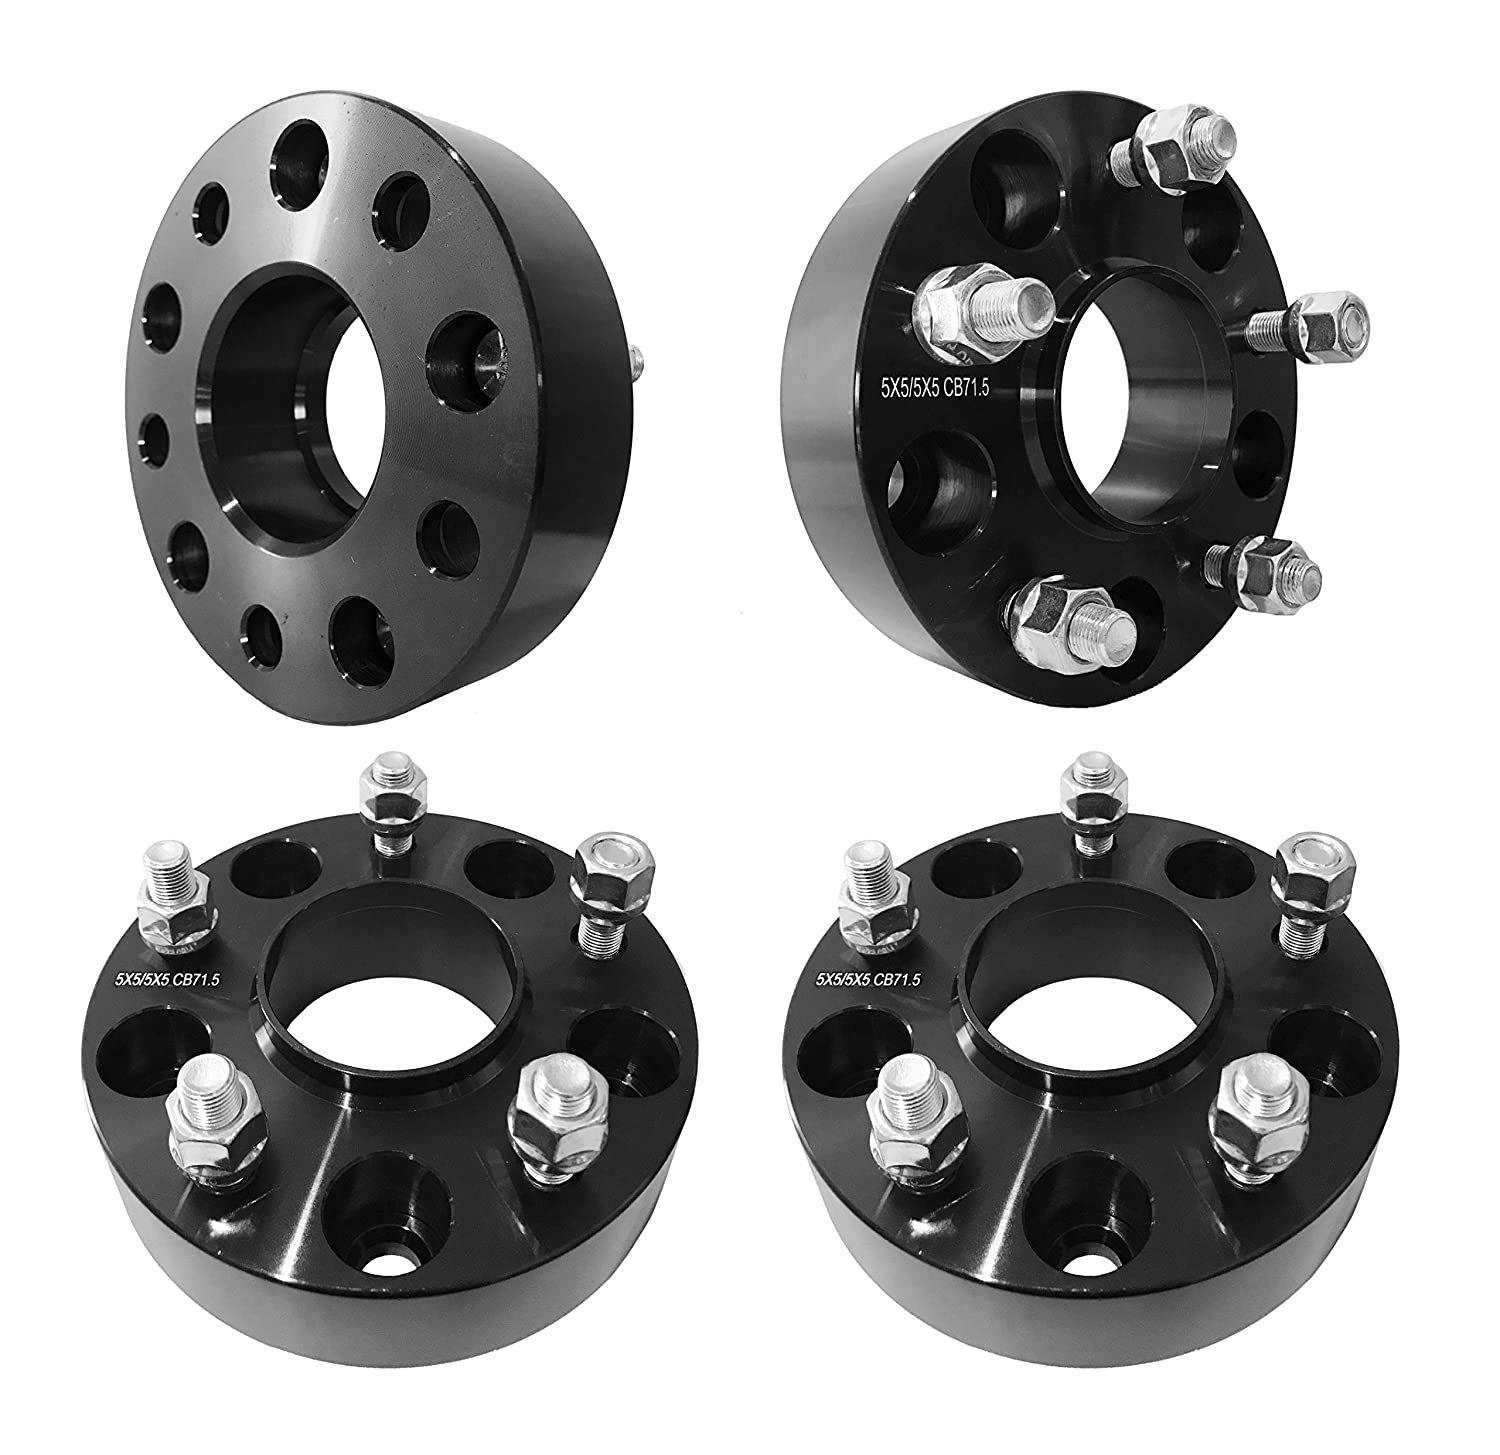 5x5 Hubcentric Wheel Spacers 1.5' inch (38mm) For JK Jeep Wrangler, XK Commander, WJ WK Grand Cherokee (71.5mm bore, 1/2'-20 Studs) (Black) (4 Pieces) 1/2-20 Studs) (Black) (4 Pieces) FAS Motorsports